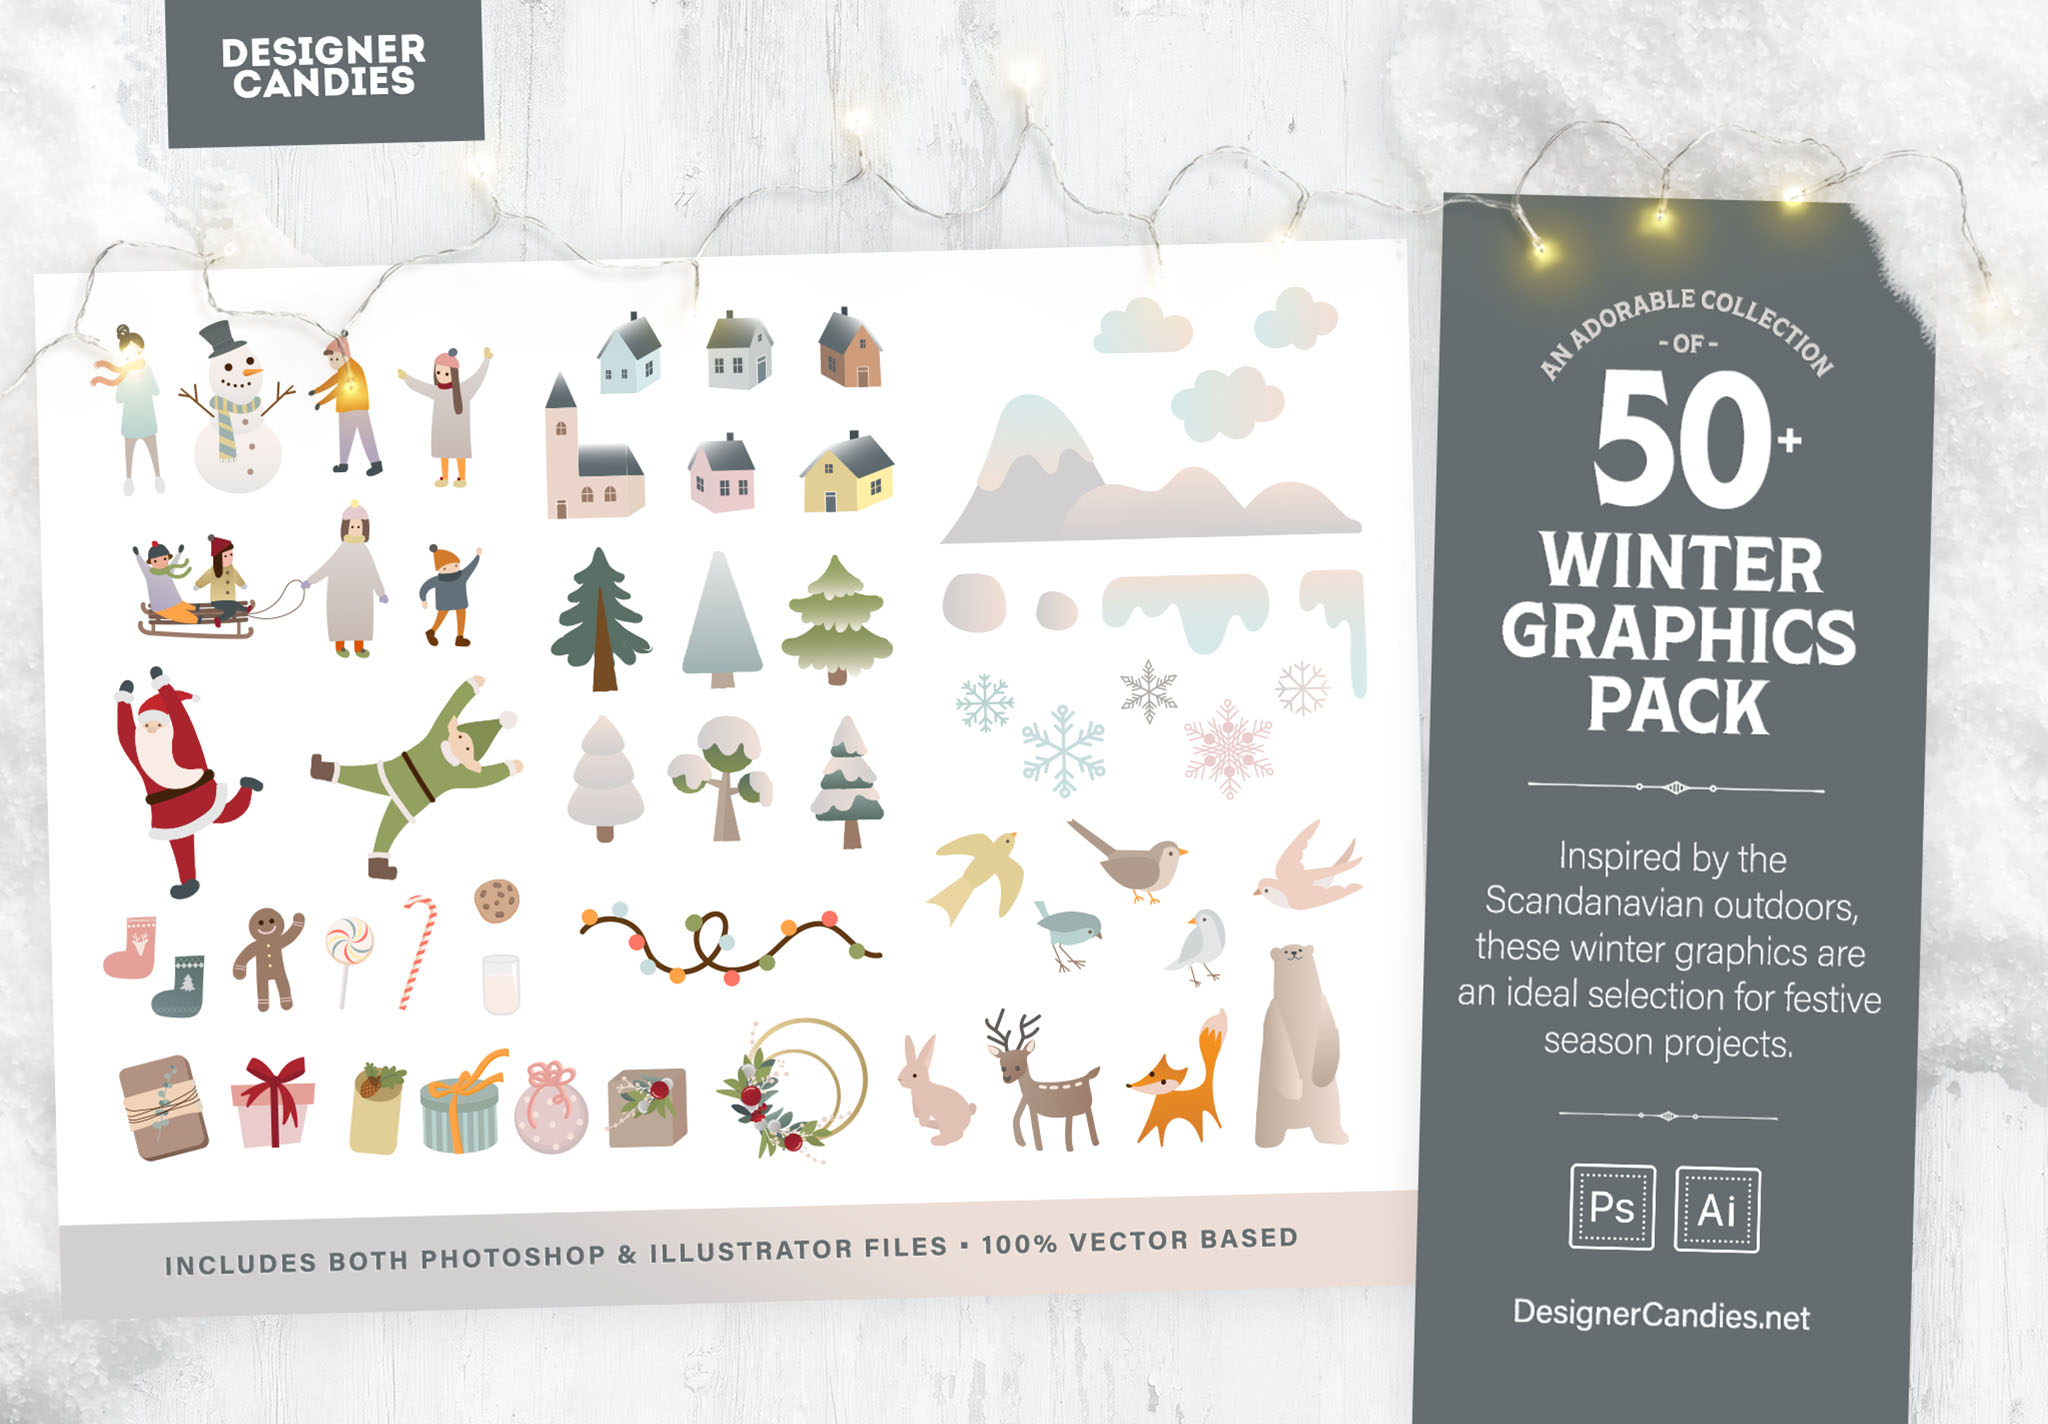 Winter Graphics Pack - 50+ Vector Illustrations for Photoshop & Illustrator